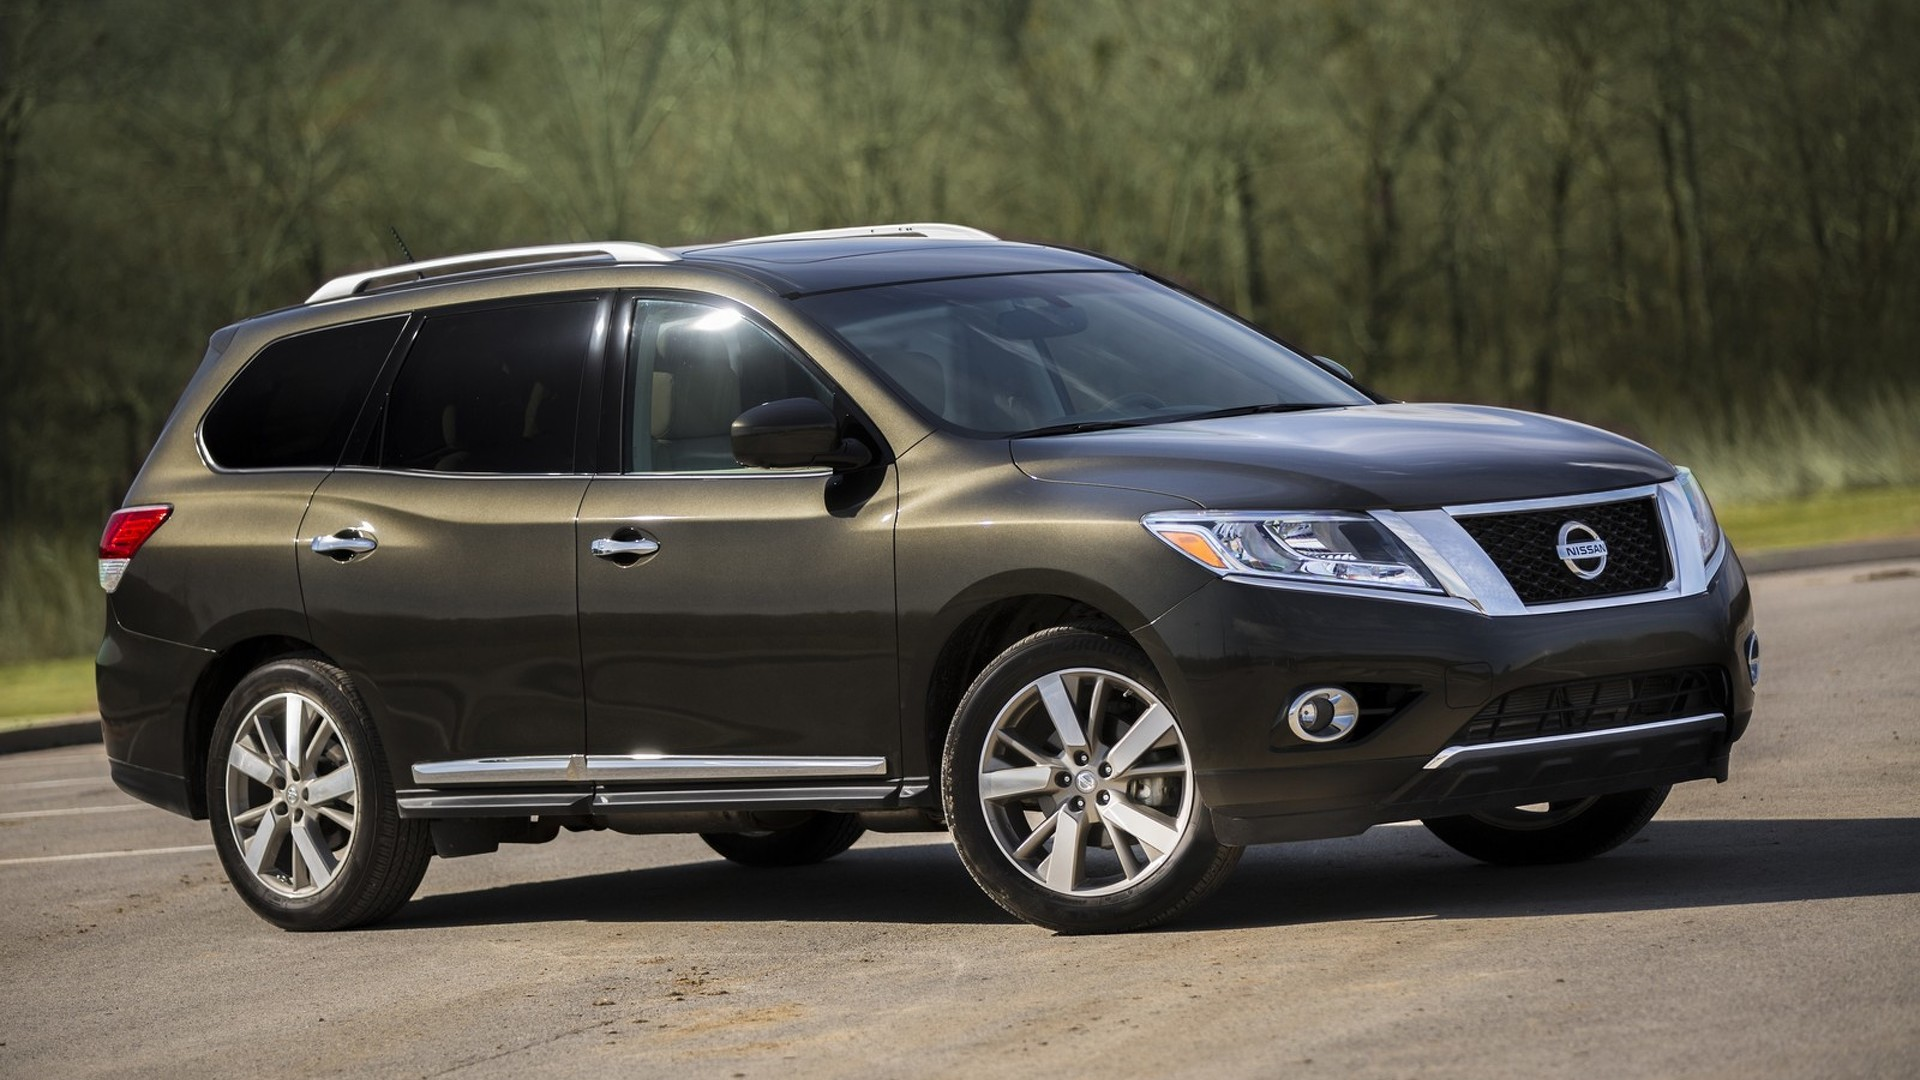 Nissan Pathfinder News And Reviews Motor1 Com